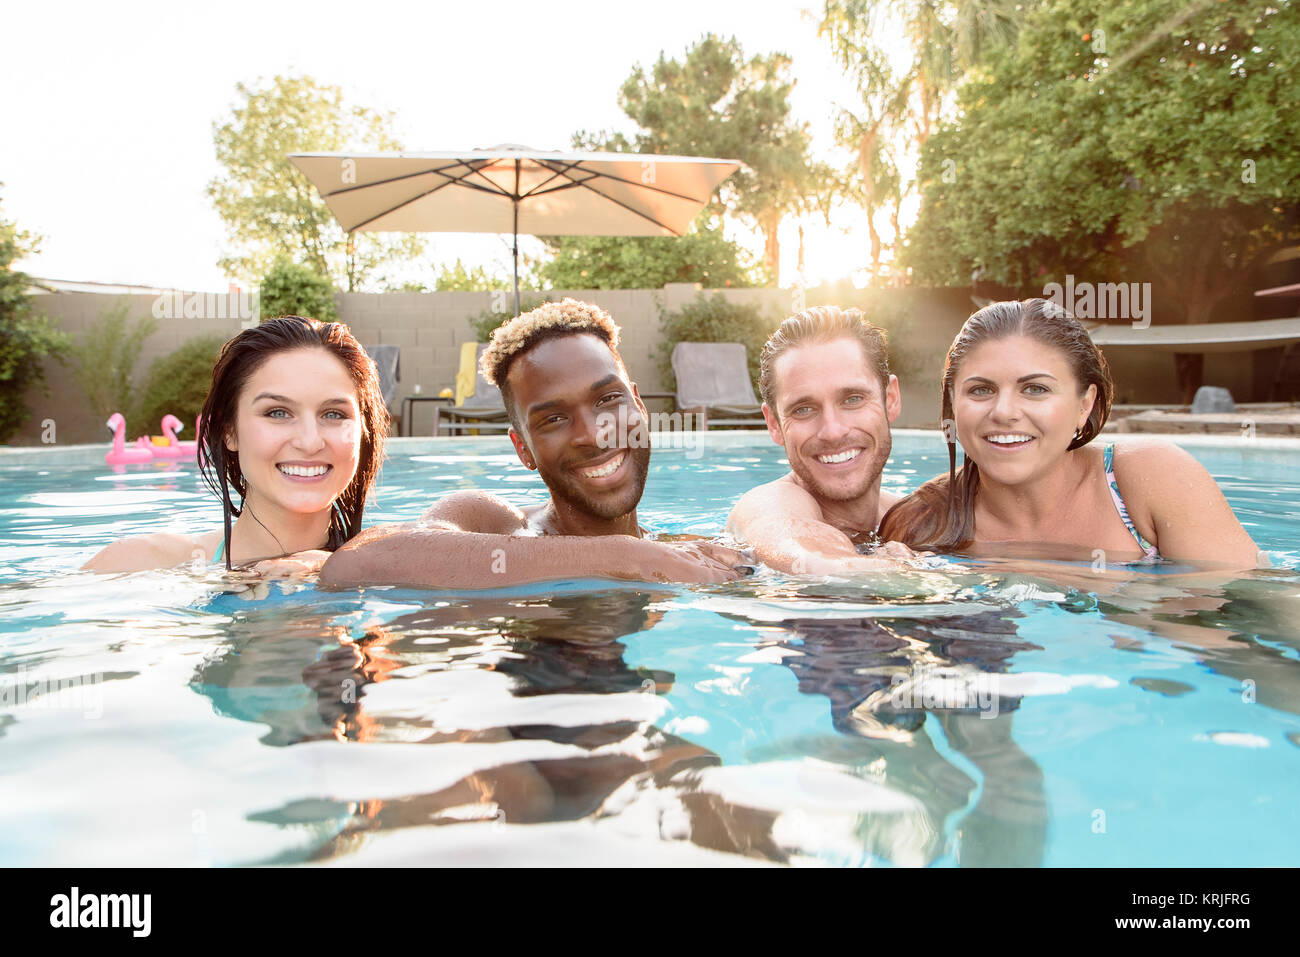 Portrait of smiling friends in swimming pool - Stock Image